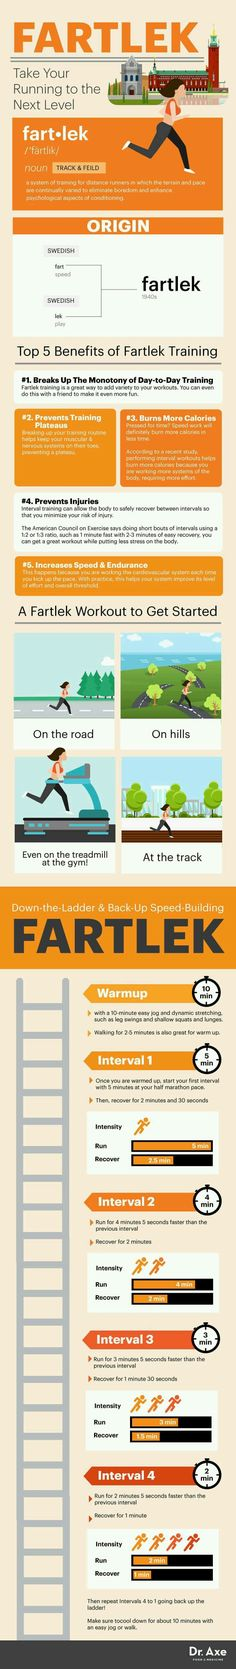 Fartlek: A Swedish Training Trick for Better Running - Dr. Axe Fartlek: A Swedish Training Trick for Better Running – Dr. Axe Fartlek: A Swedish Training Trick for Better Running – Dr. Mental Training, Training Plan, Running Training, Interval Training, Running Humor, Speed Training, Triathlon Training, Running Workouts, Running Tips